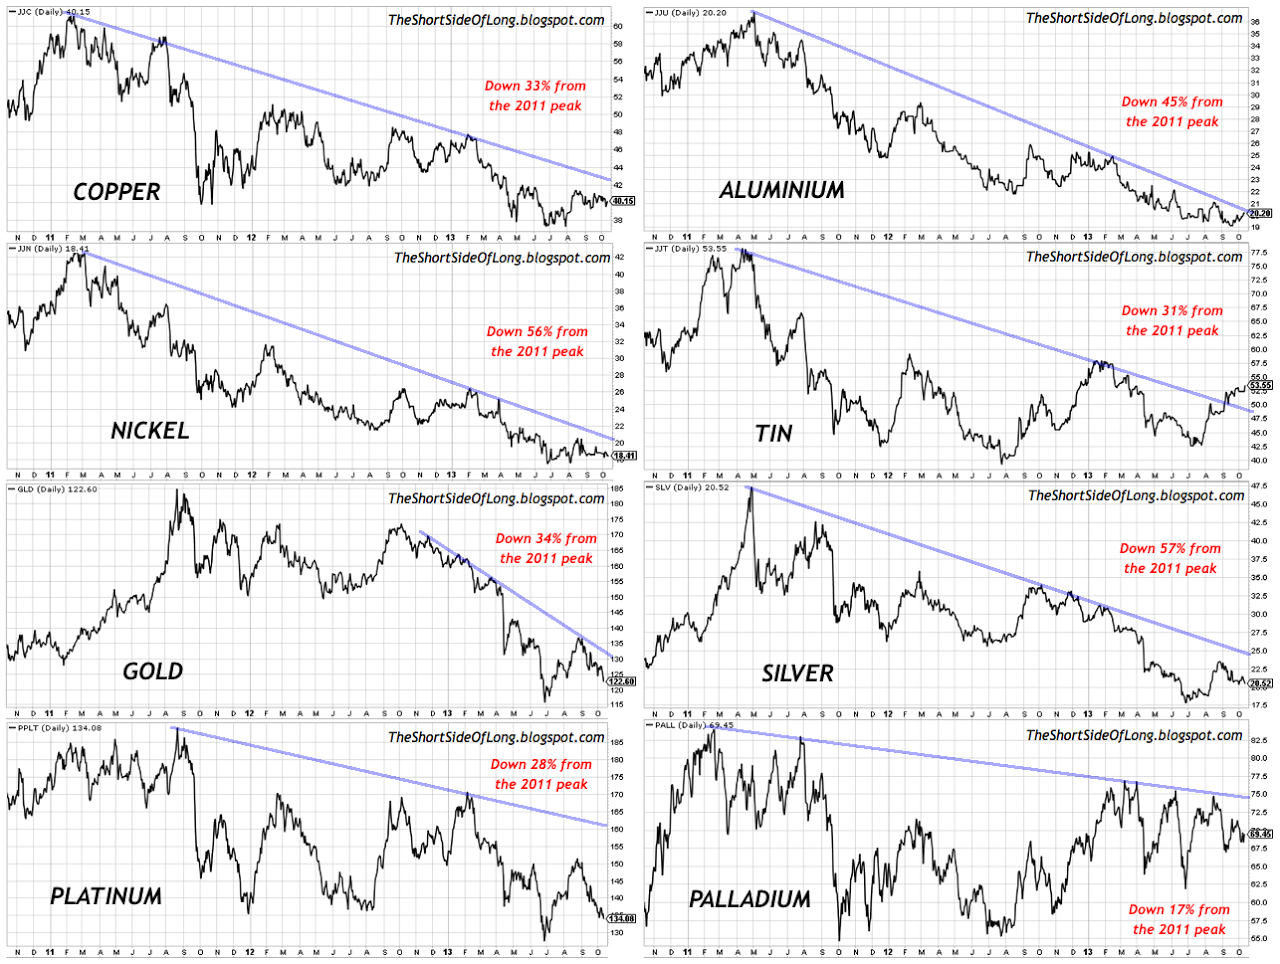 Bear Market In Industrial and Preciousl Metals